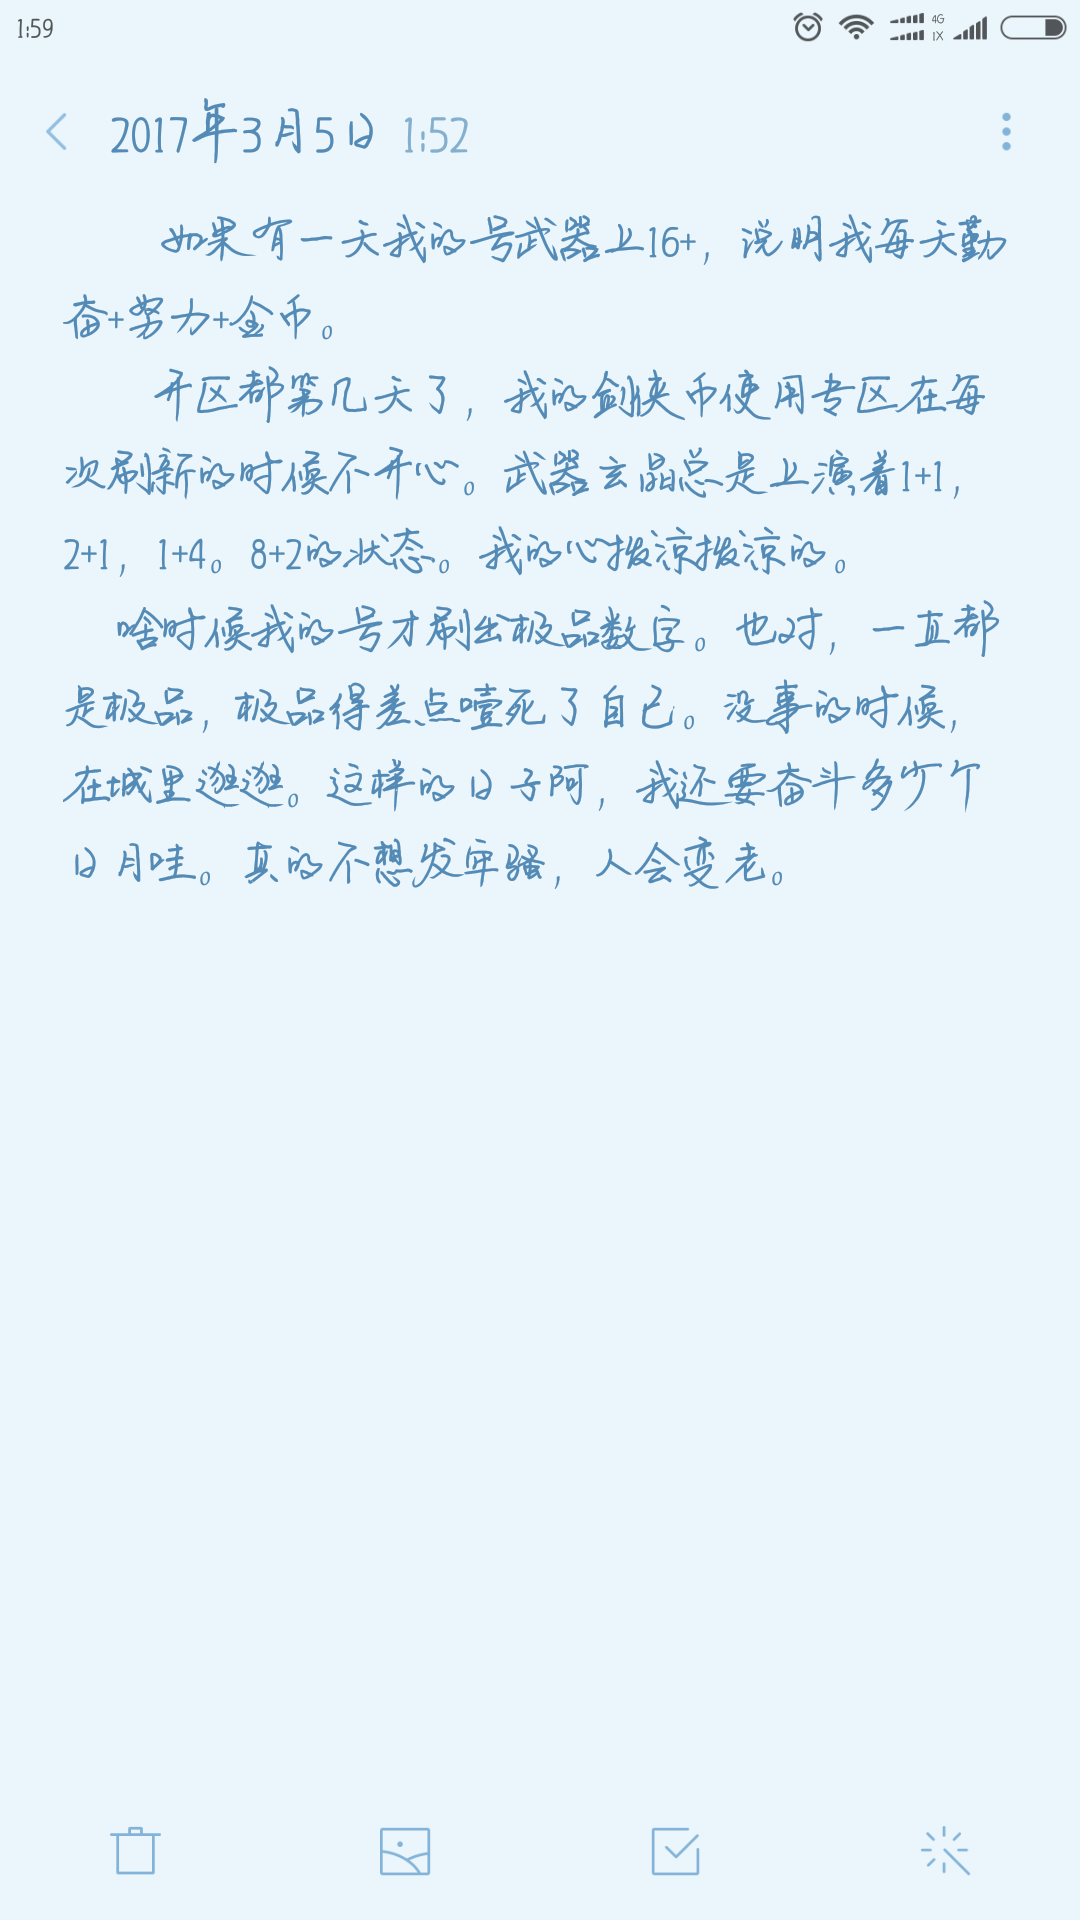 Screenshot_2017-03-05-01-59-01-701_com.miui.notes.png